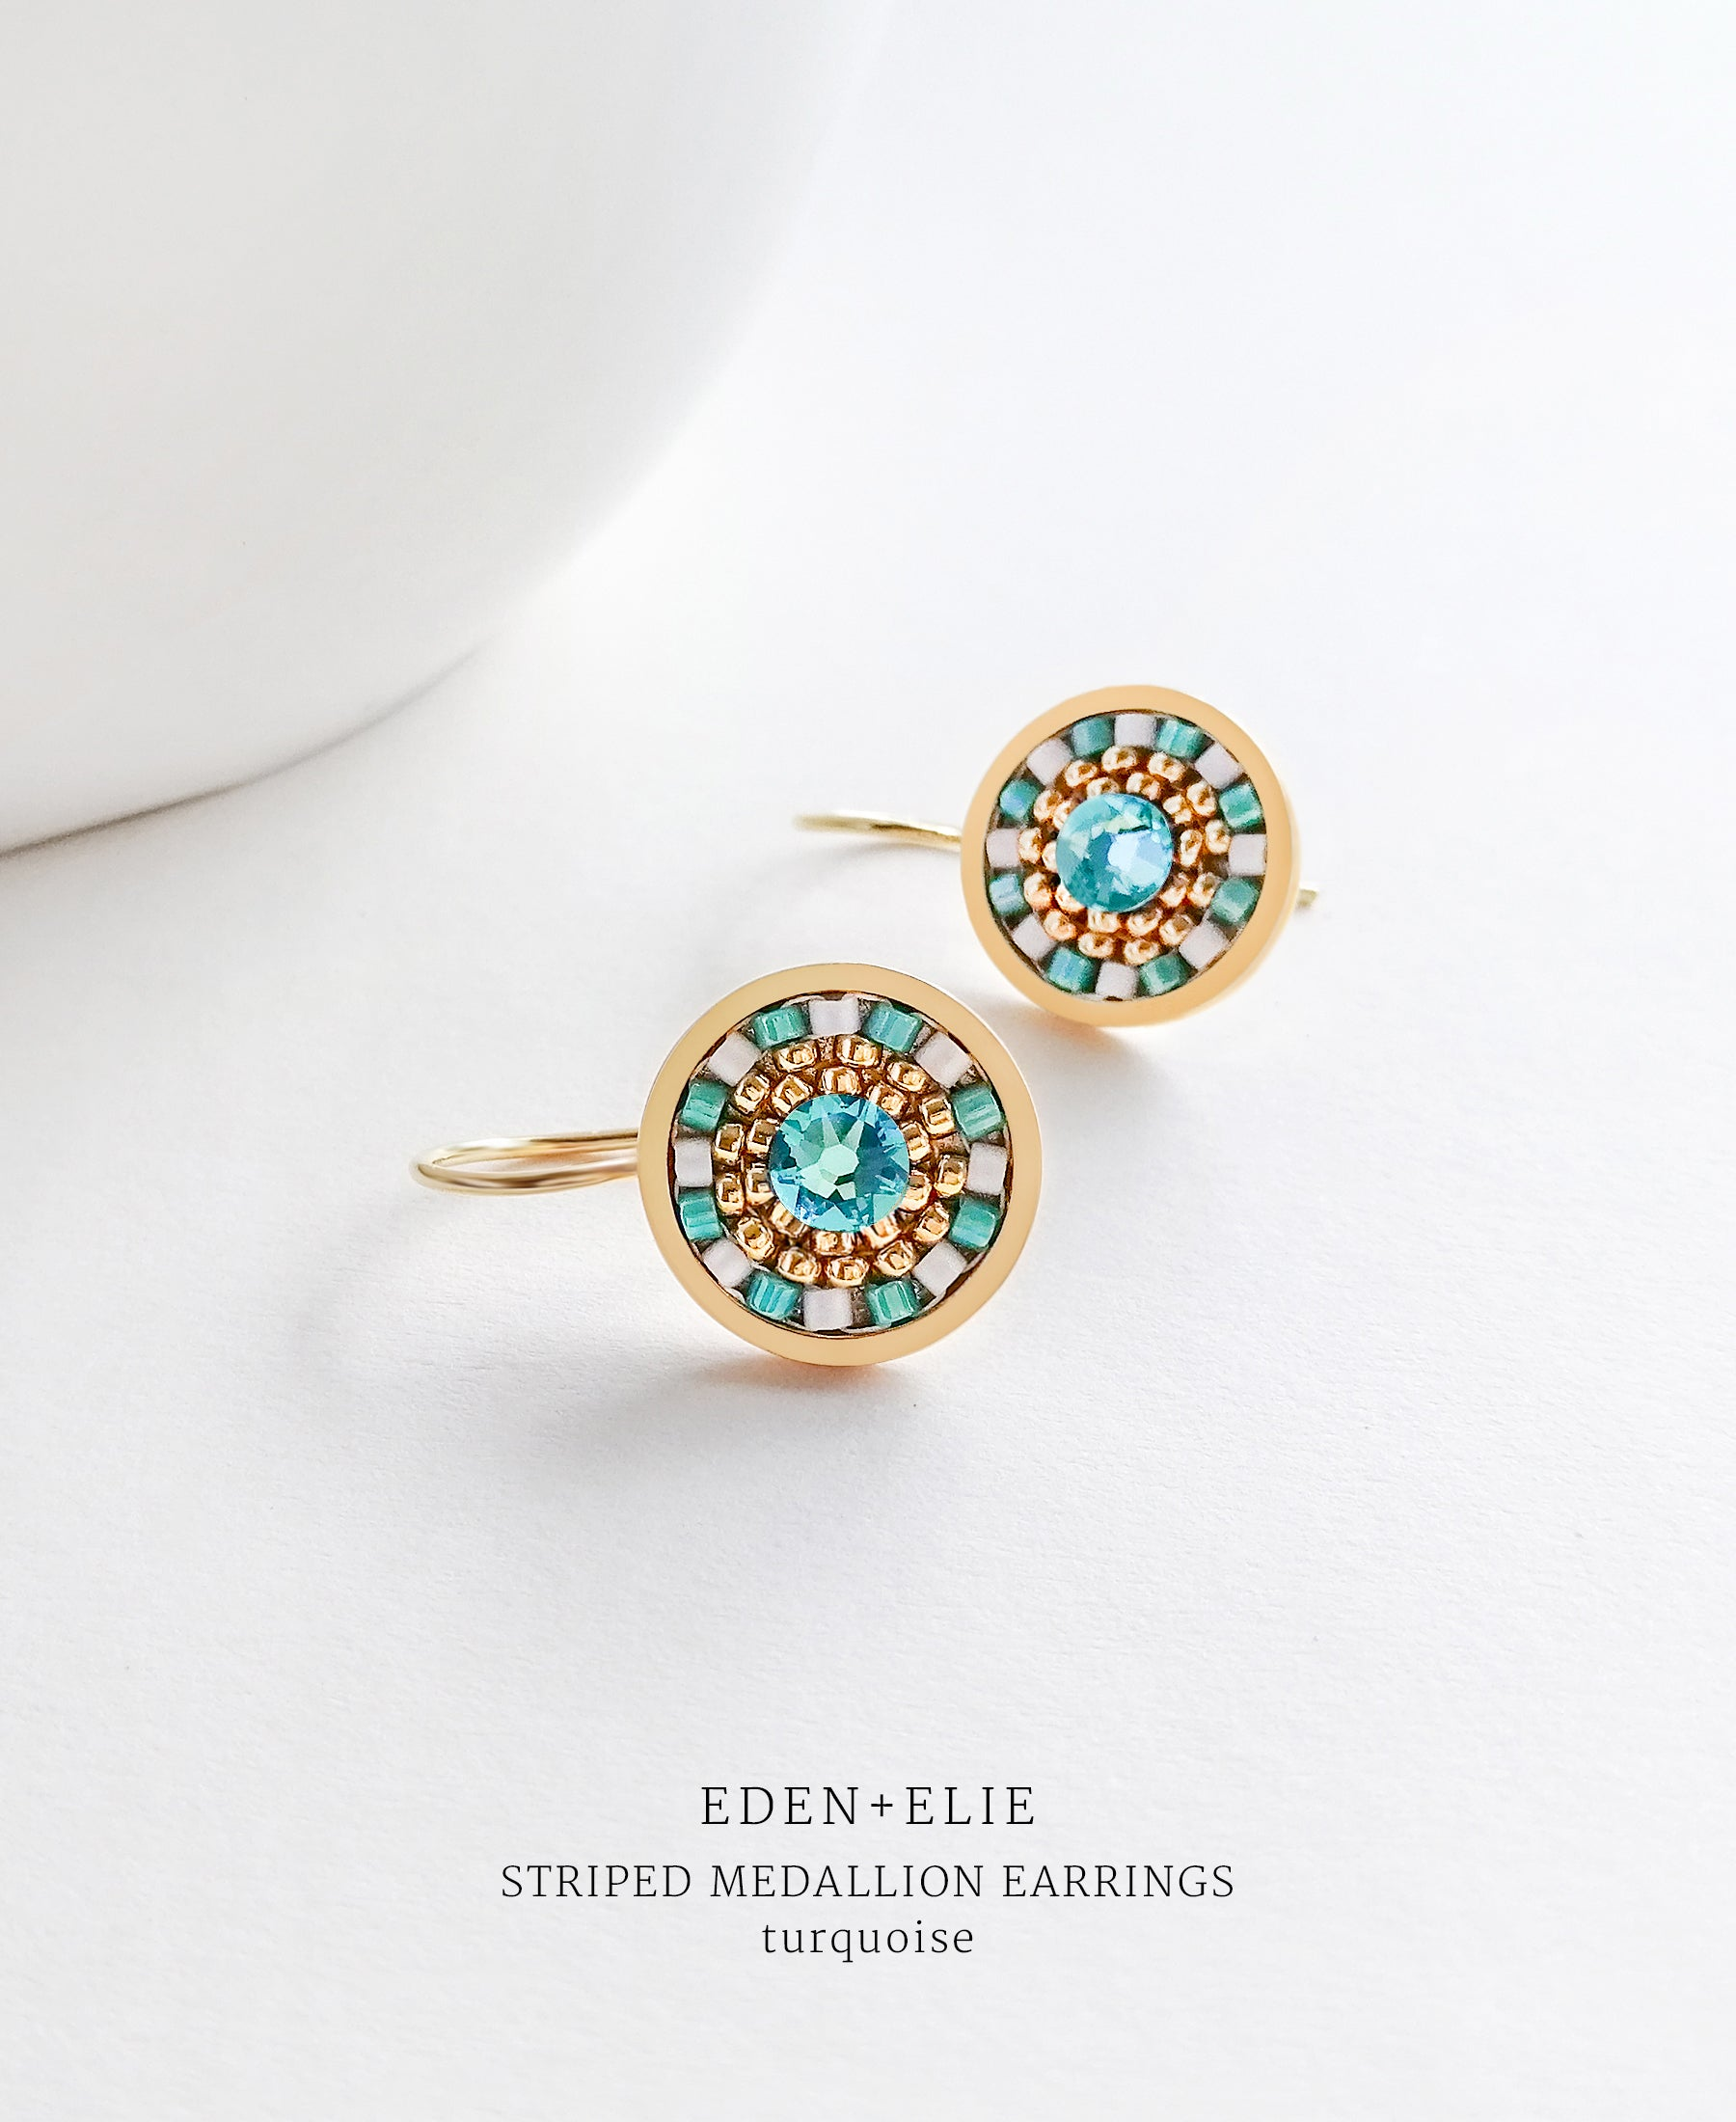 EDEN + ELIE Striped Medallion drop earrings - turquoise